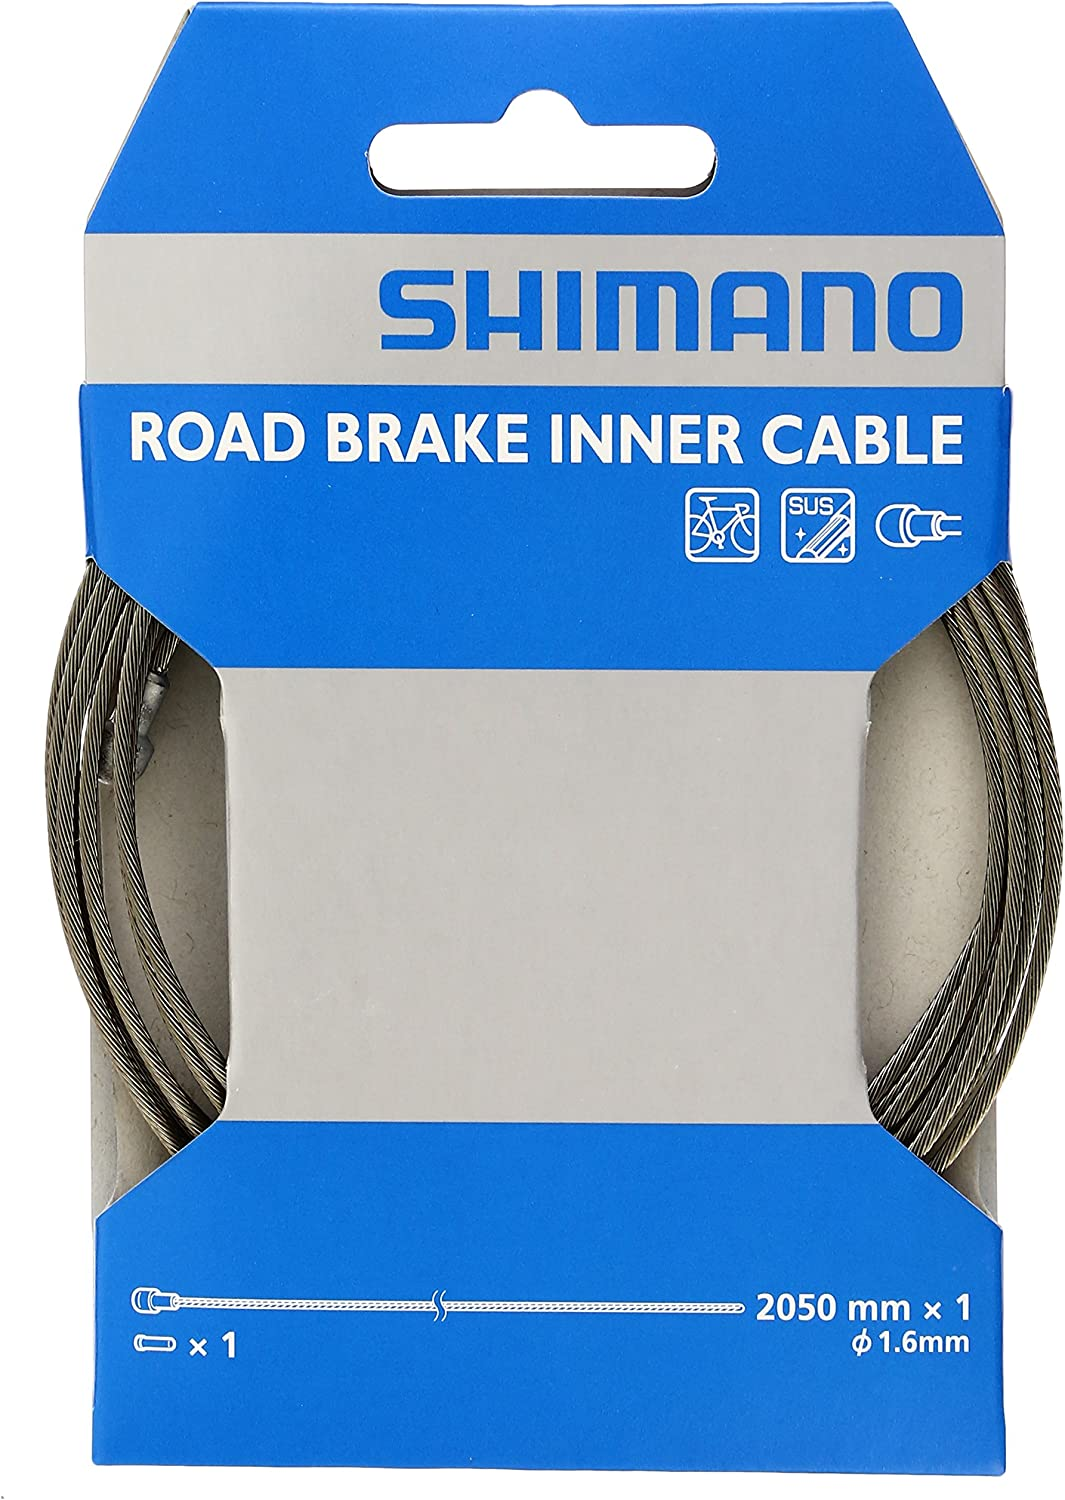 Stainless Inner Cables NOS Vintage Retro Shimano SLR Brake Outer Cable